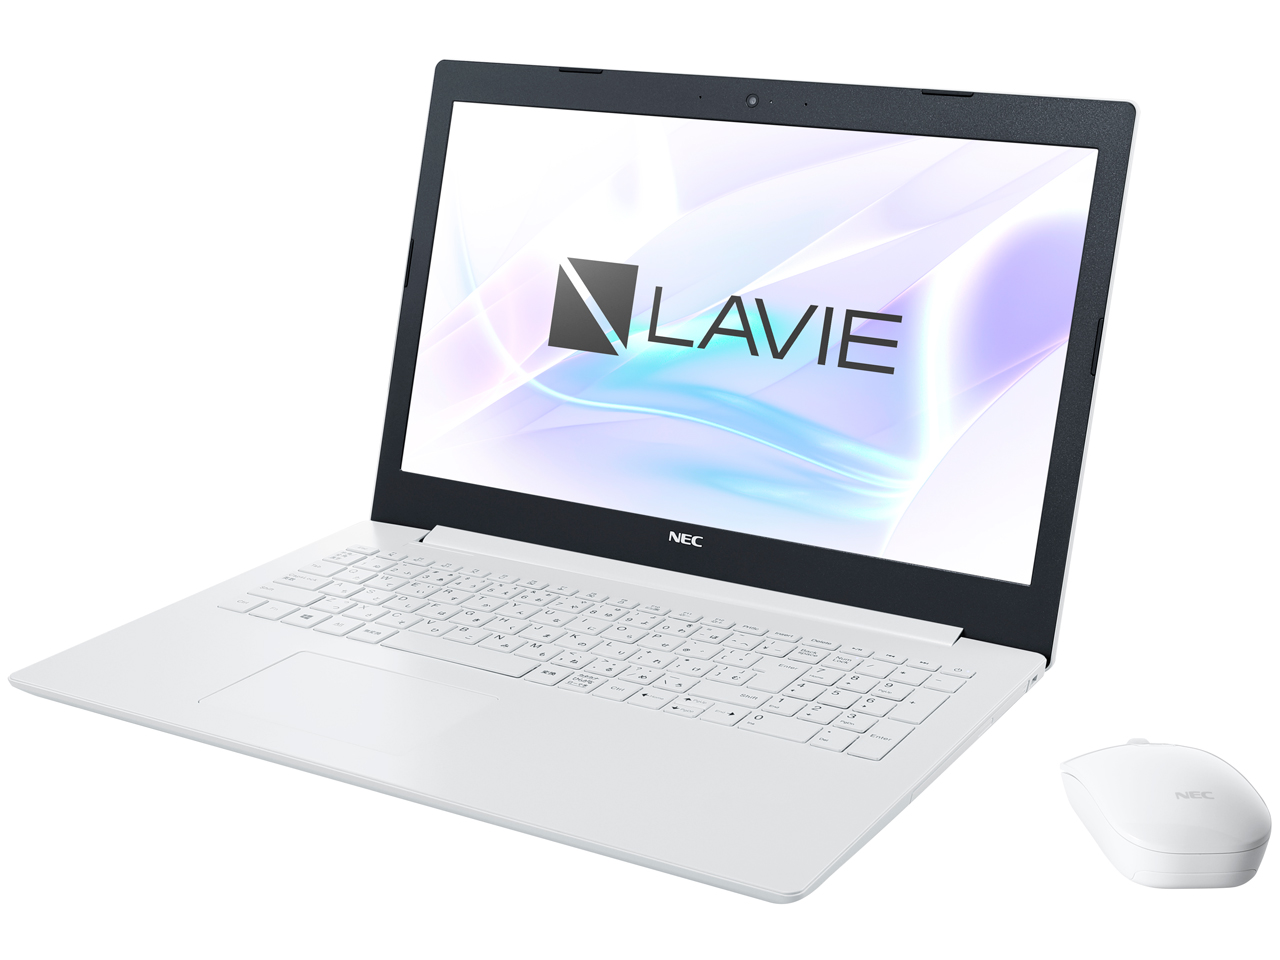 ★☆NEC LAVIE Note Standard NS700/KAW PC-NS700KAW [カームホワイト] 【ノートパソコン】【送料無料】